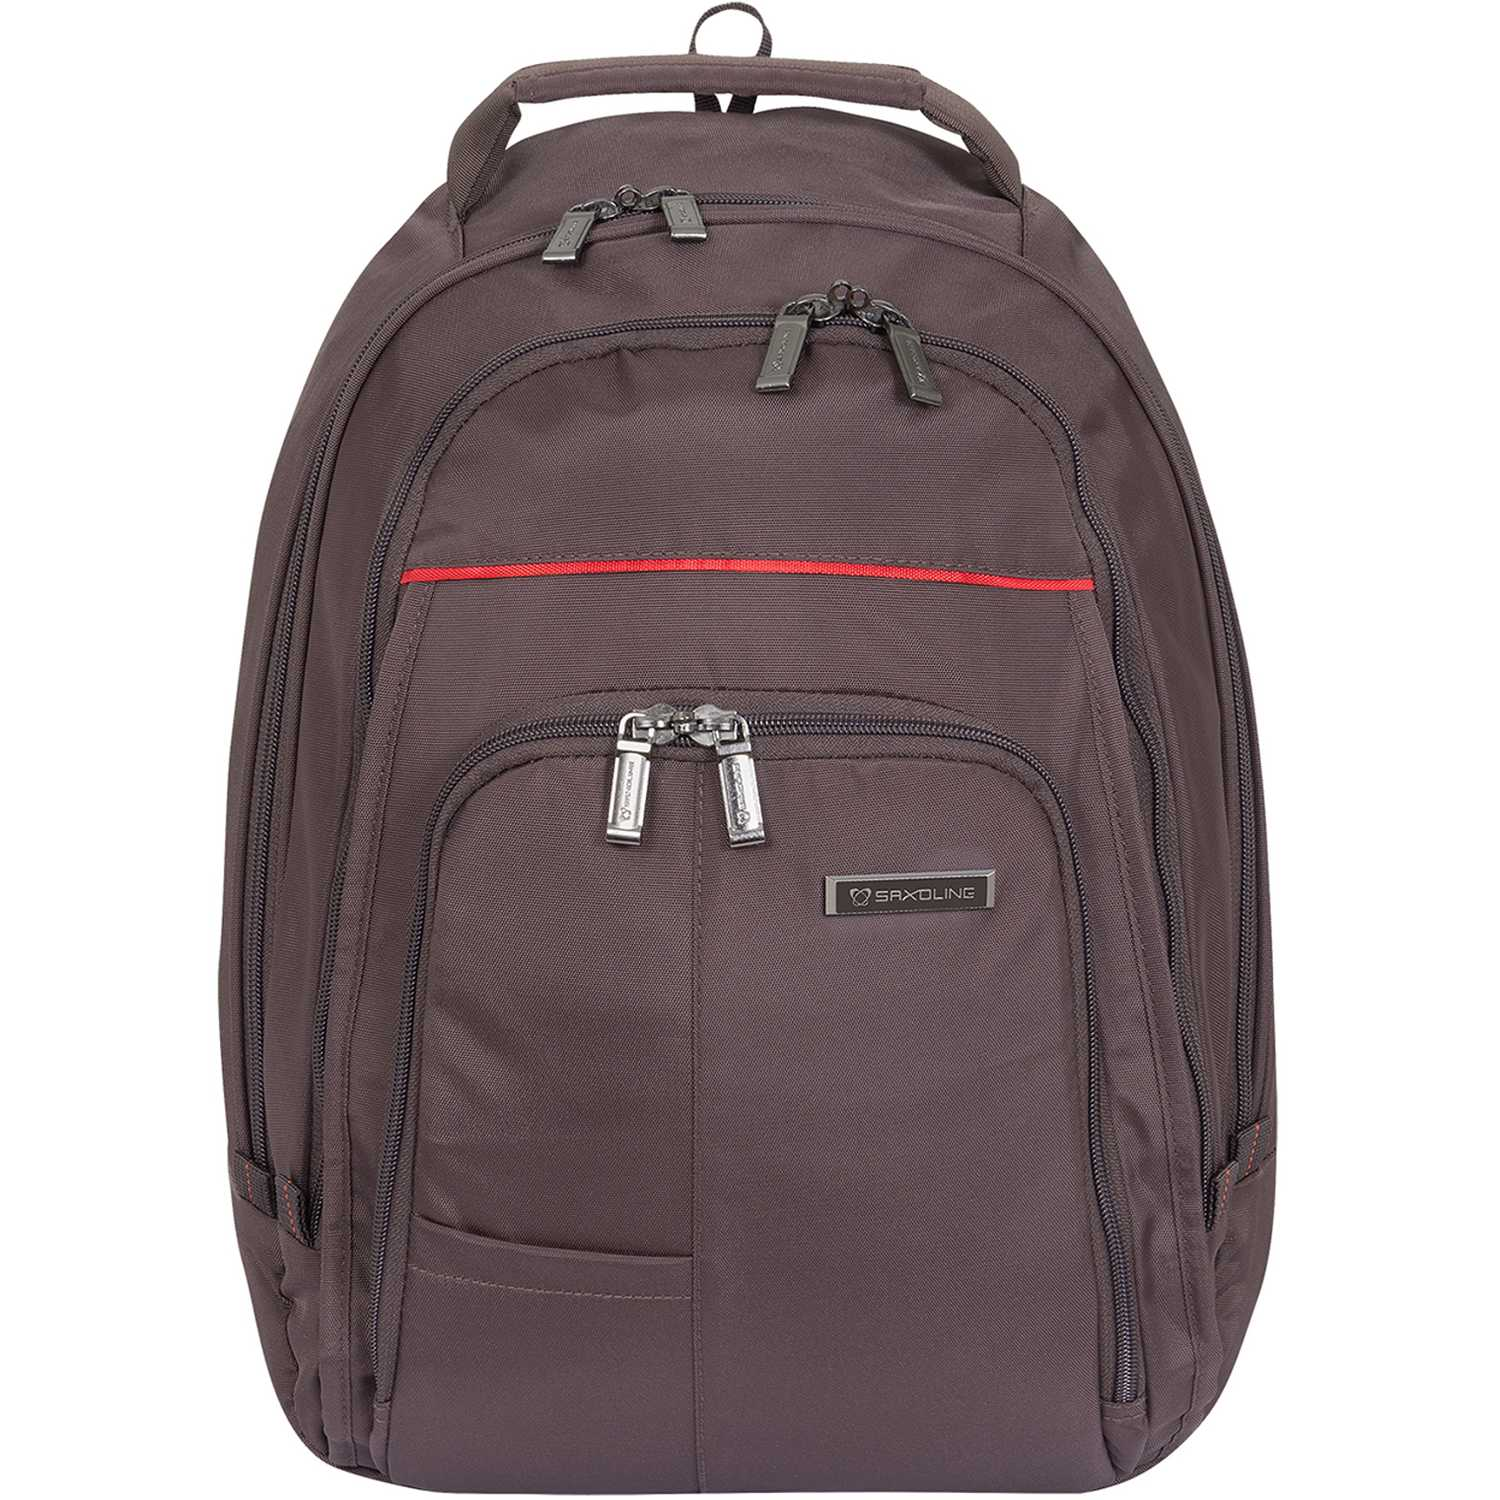 Saxoline laptop backpack 673 tobacco dow Negro Mochilas Multipropósitos